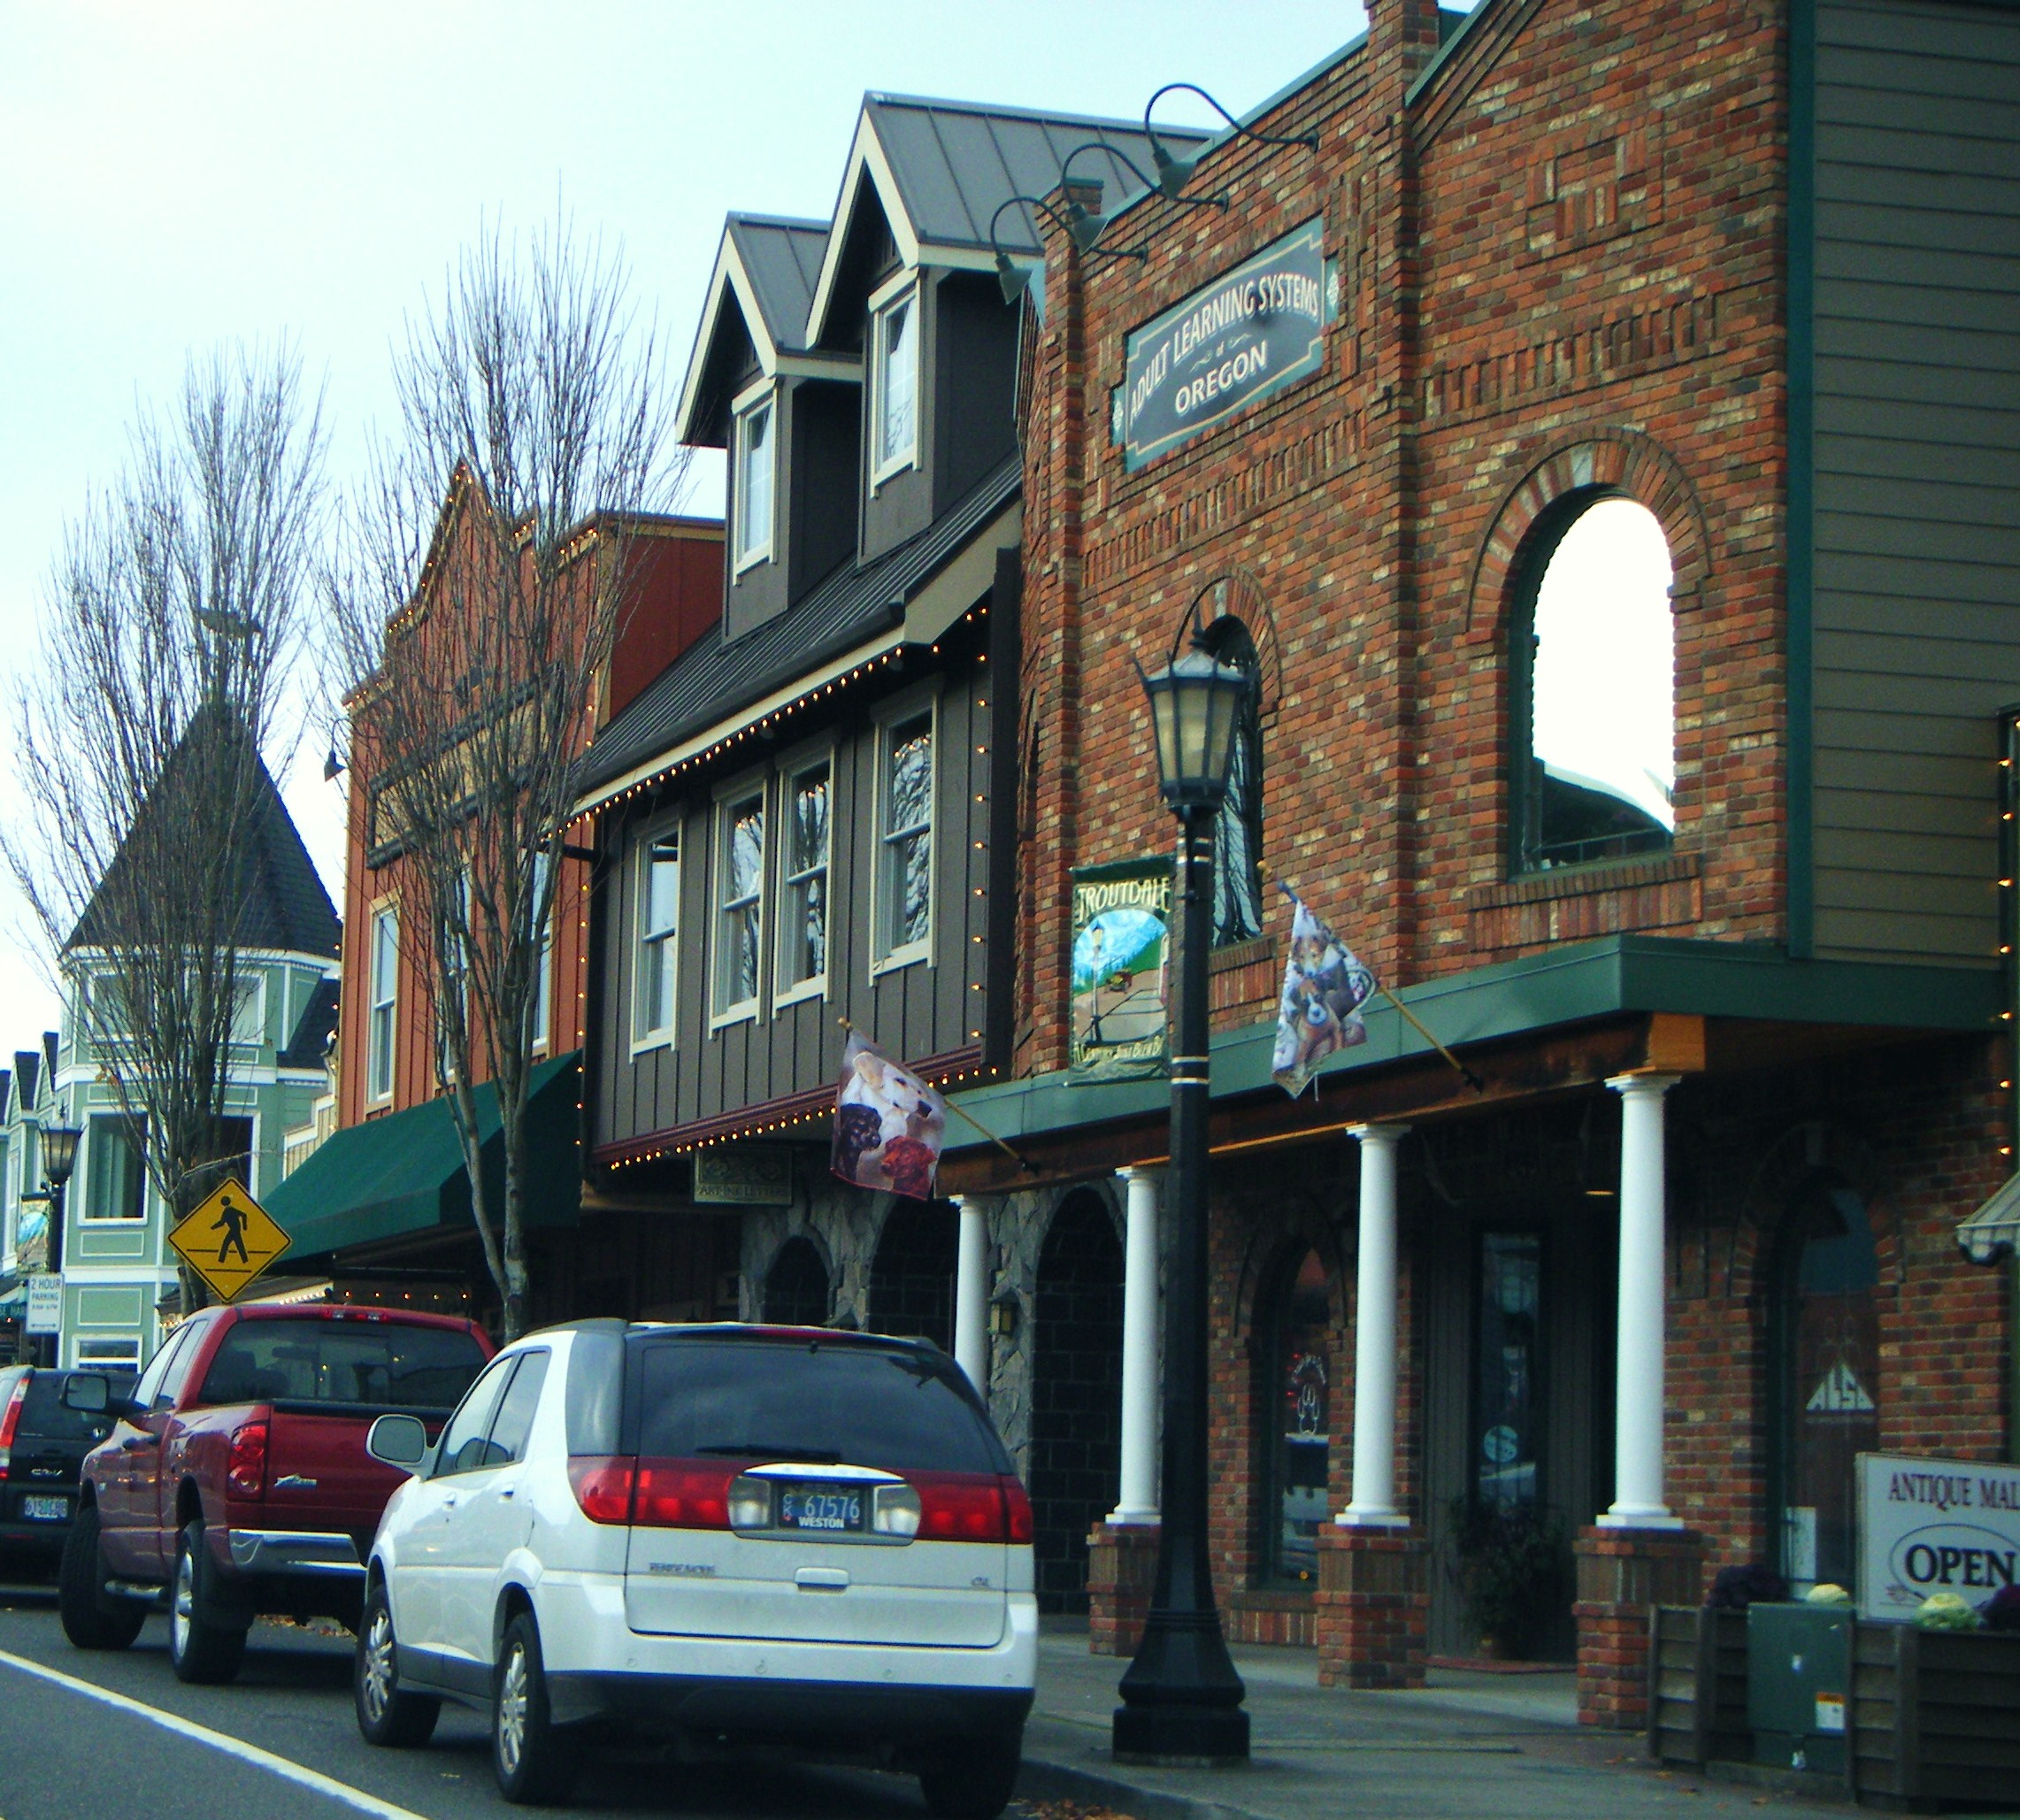 Downtown Troutdale (photo credit: McD22 via Flickr).